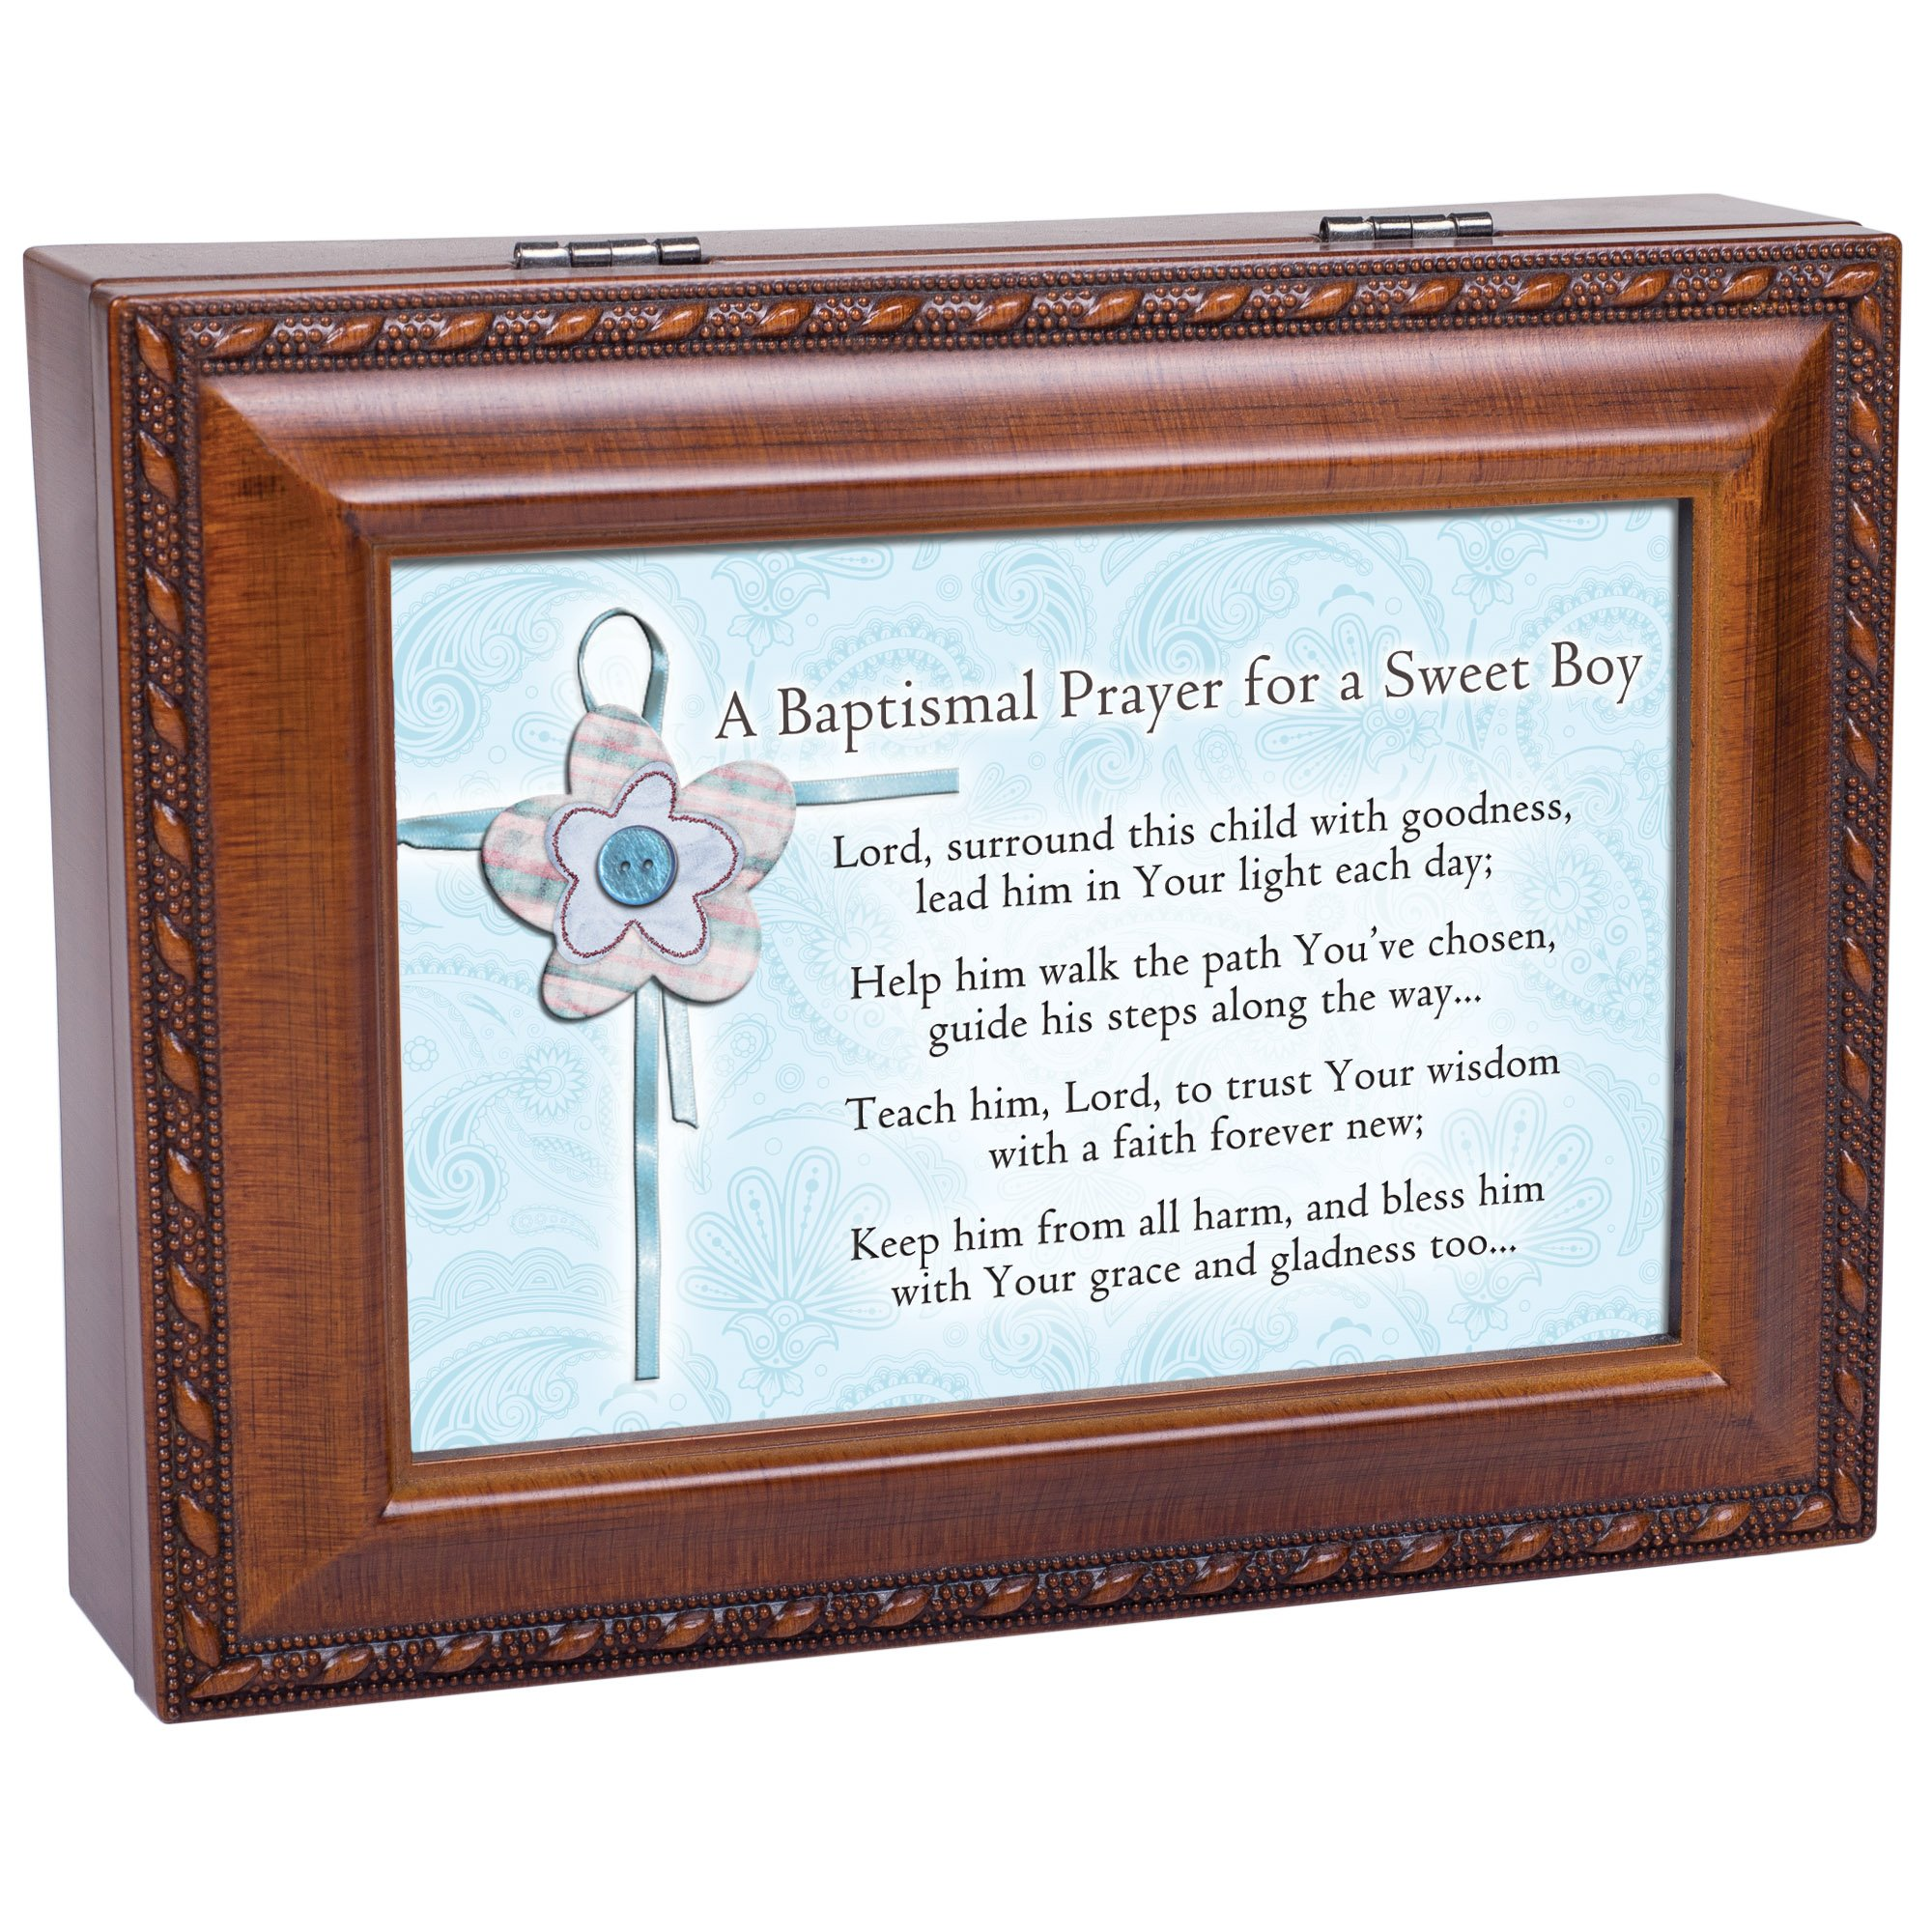 Cottage Garden Baptized In The Name Woodgrain Music Box/Jewelry Box Plays Jesus Loves Me by Cottage Garden (Image #7)